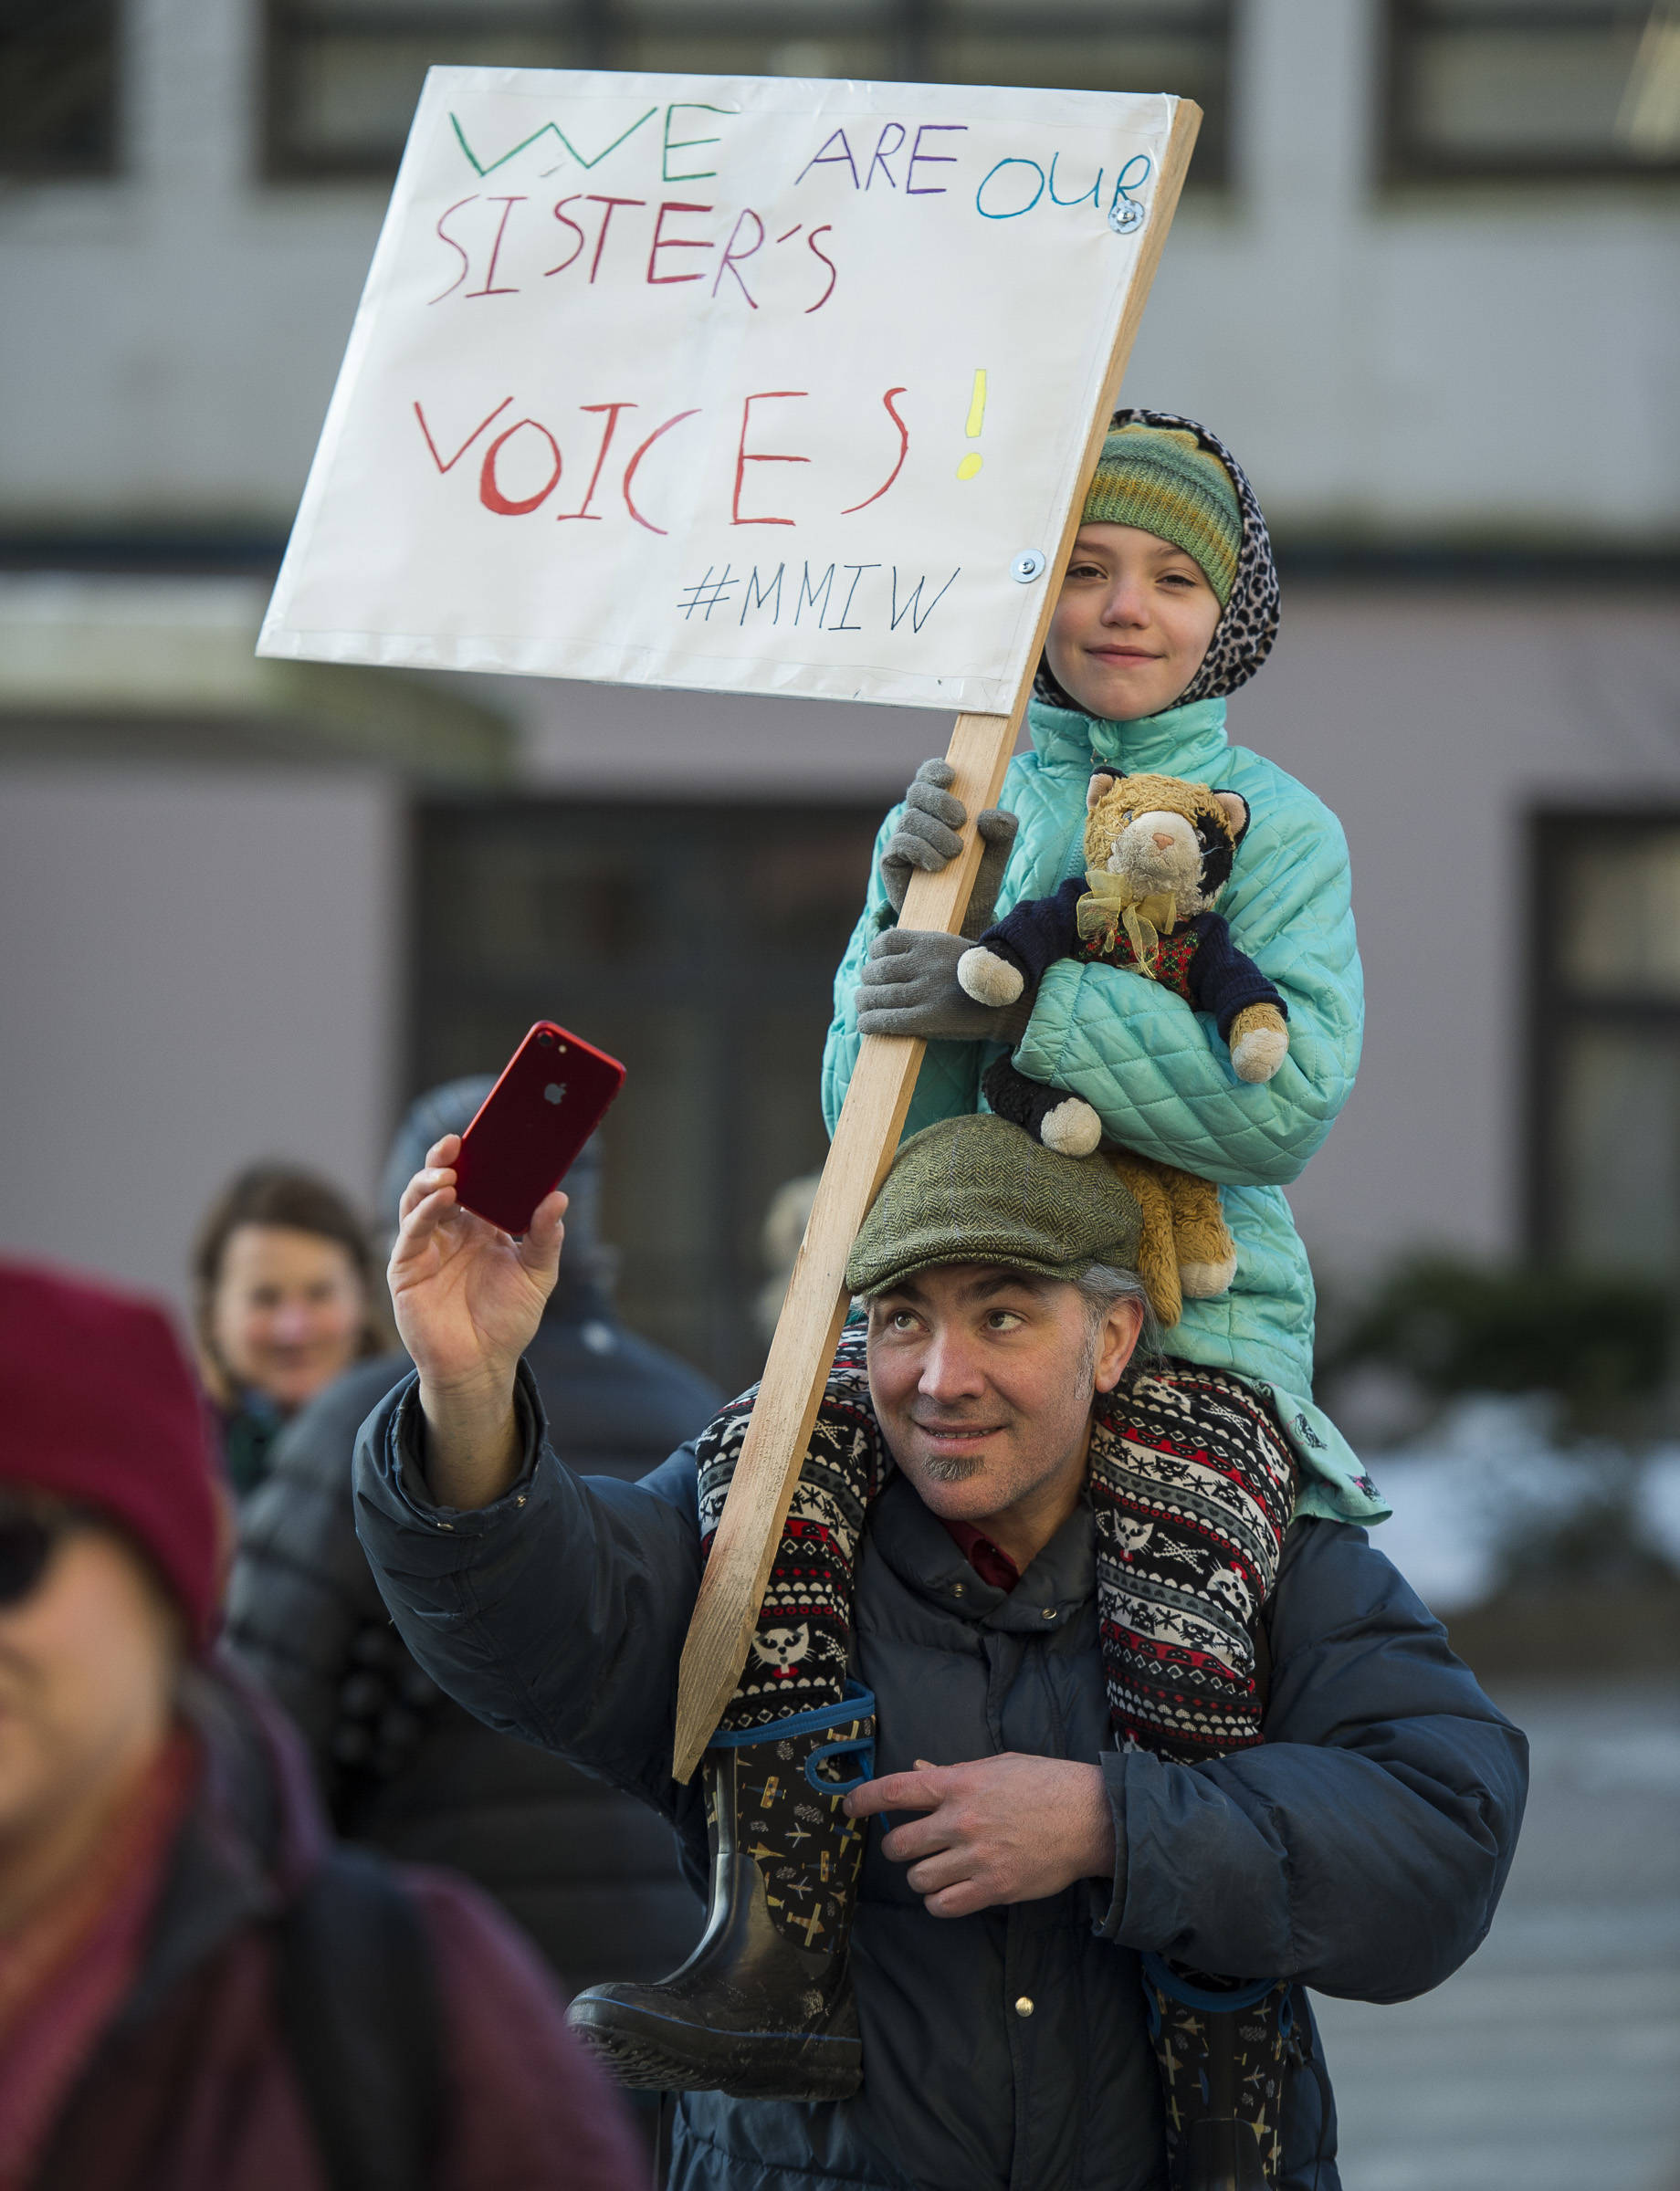 Scenes from the Women's March on Juneau in front of the Alaska State Capitol on Saturday, Jan. 19, 2019. (Michael Penn | Juneau Empire)